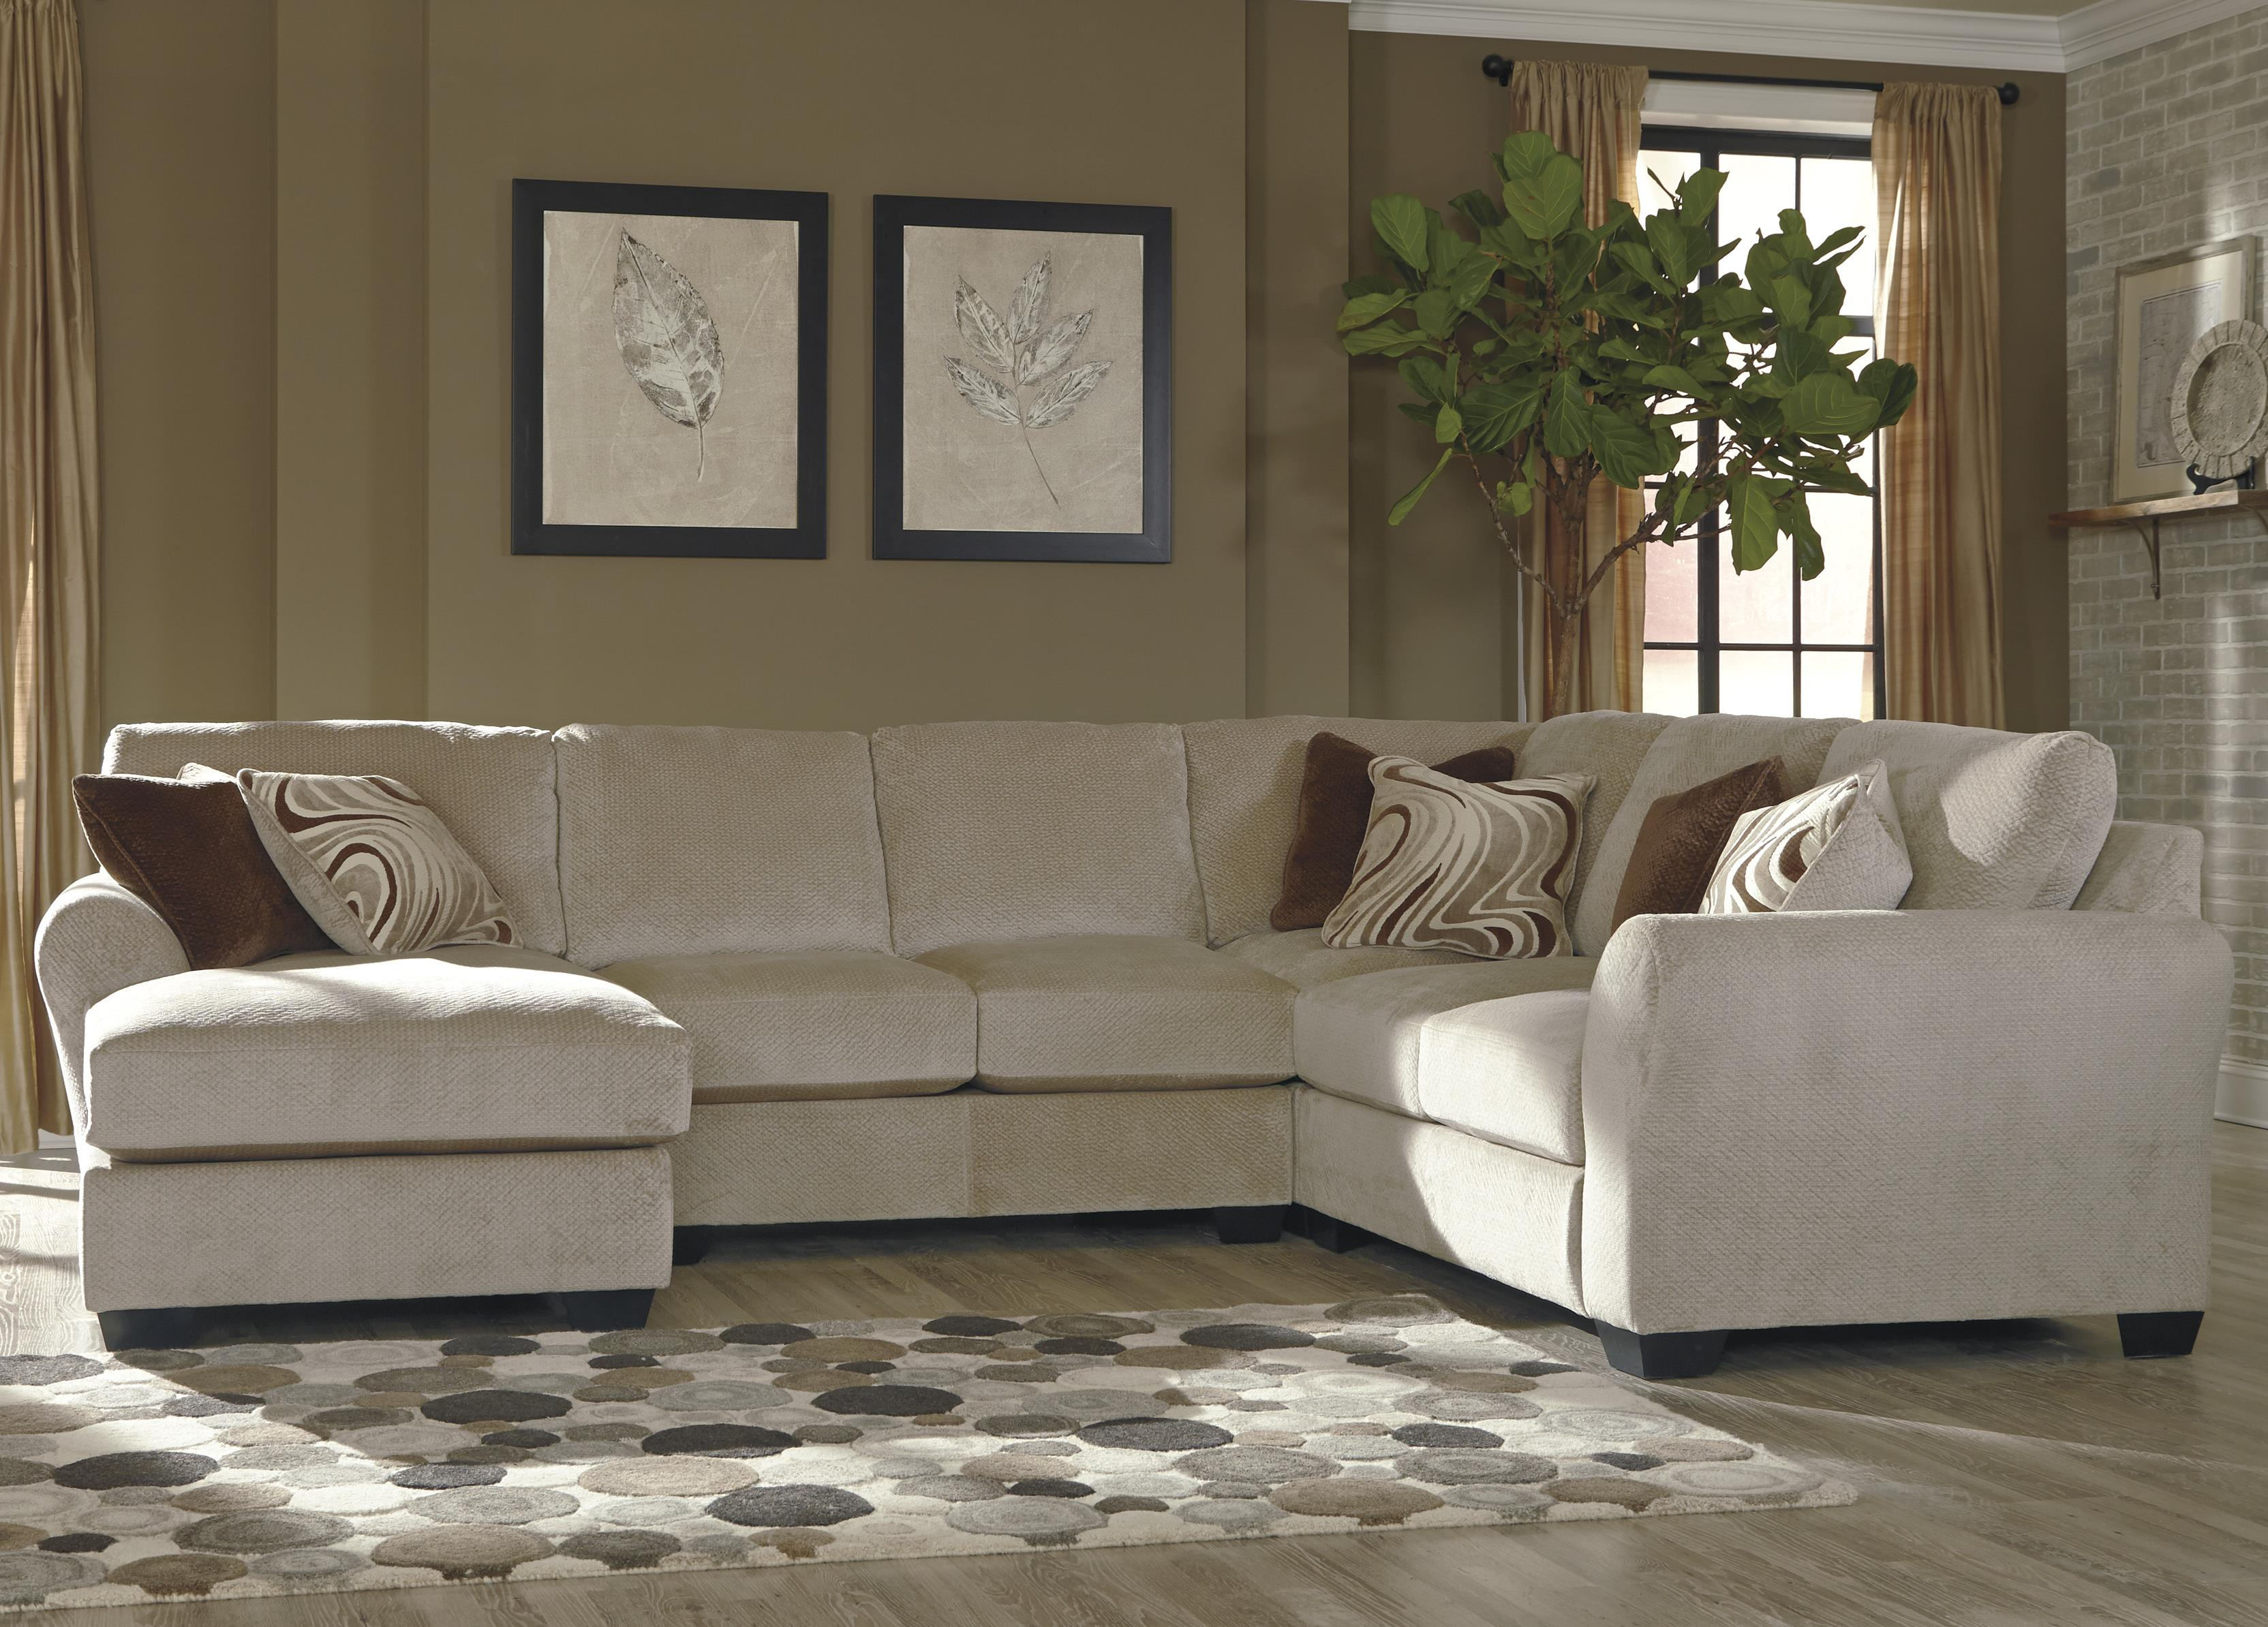 Benchcraft Hazes 4-Piece Sectional w/ Chaise - Item Number: 6570116+34+77+56